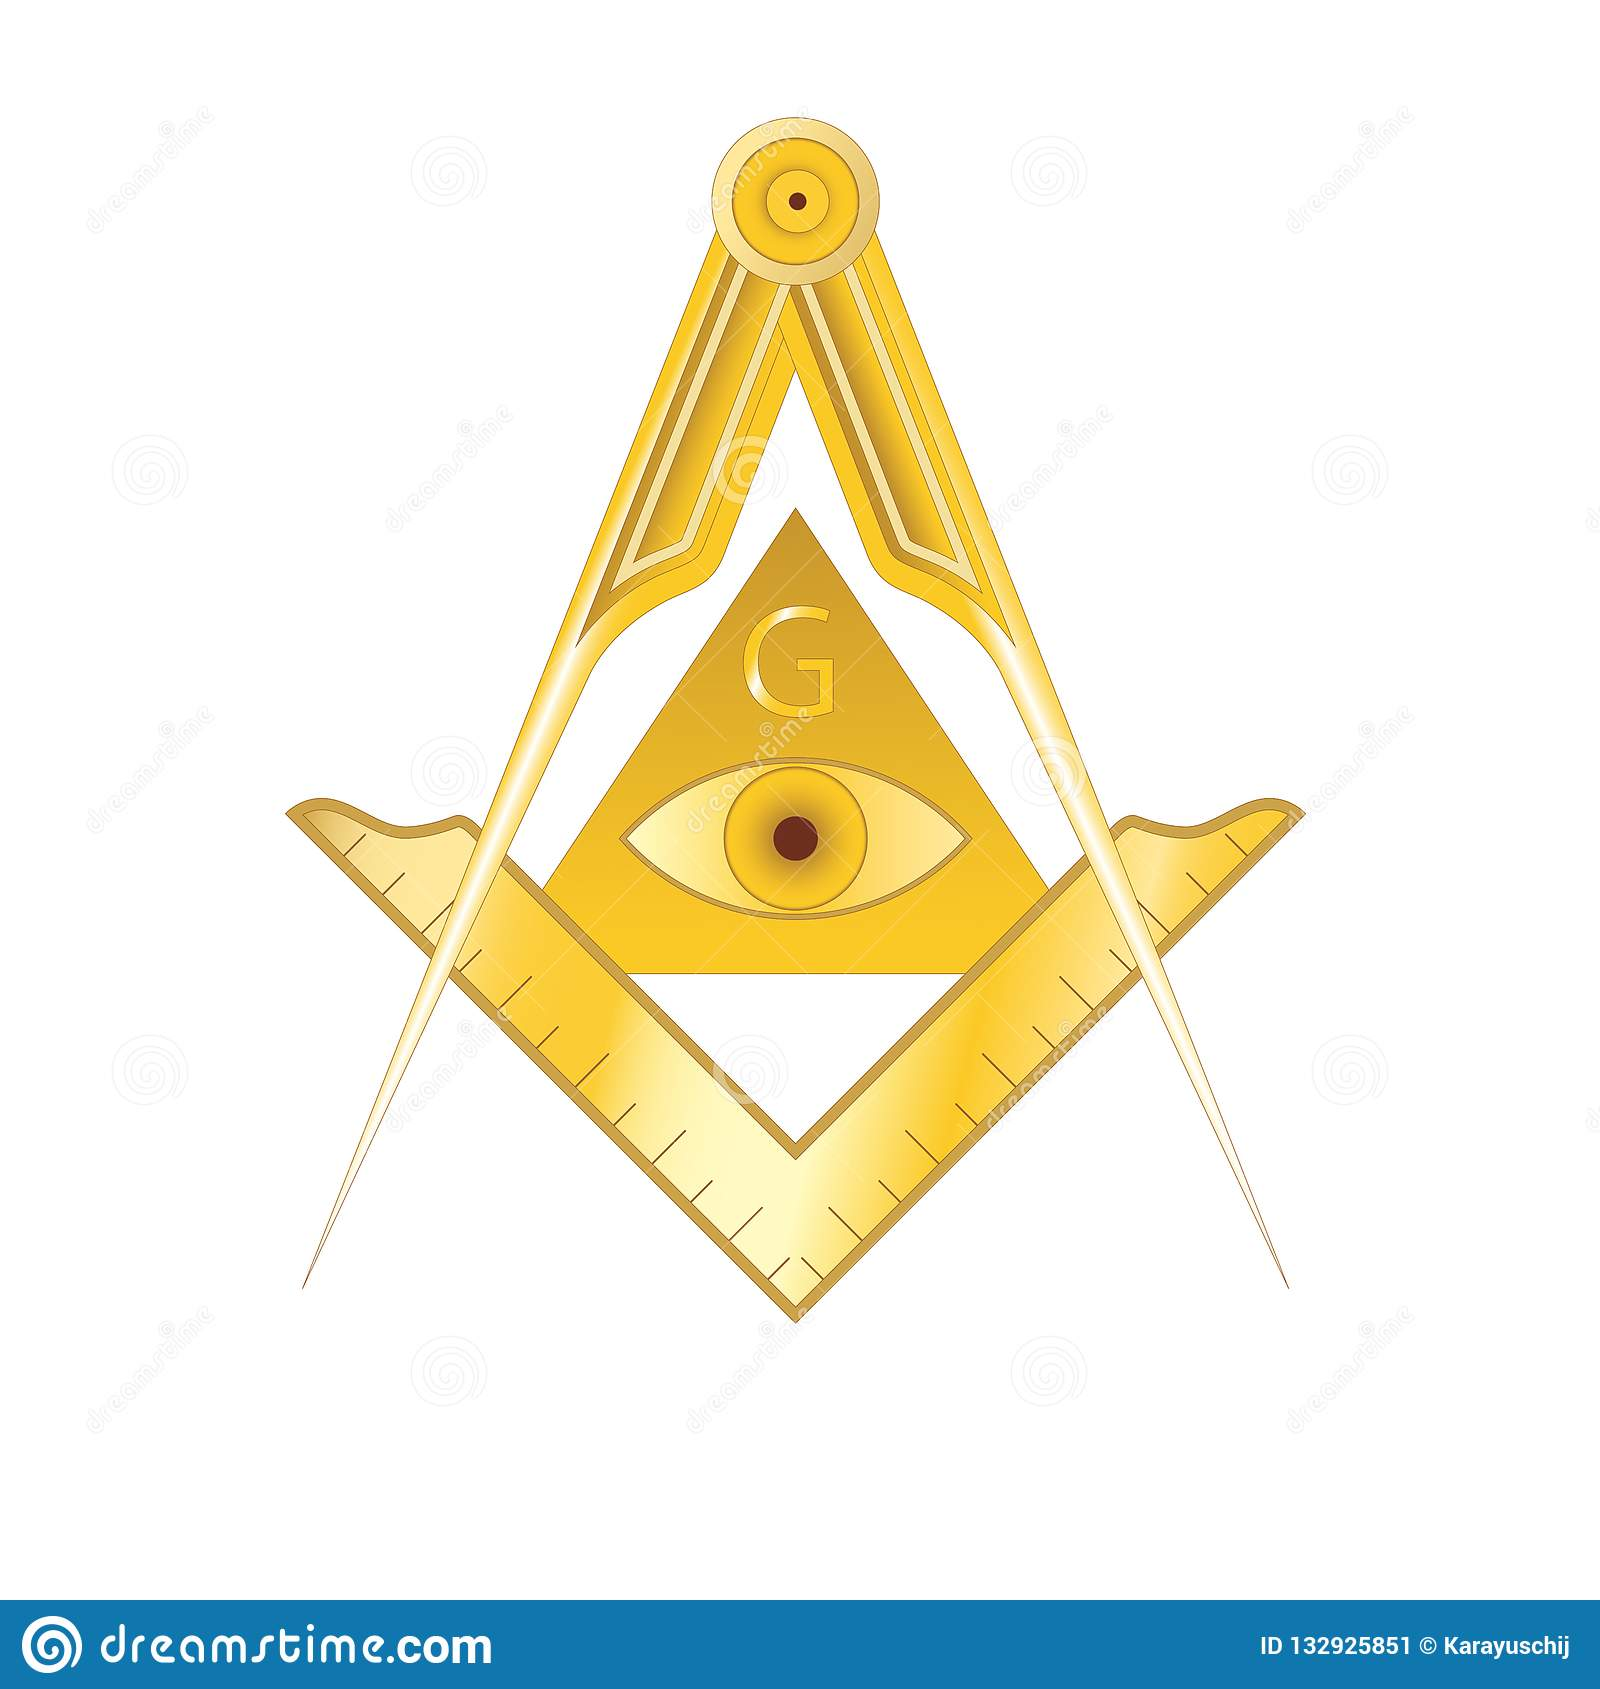 Golden Masonic Square And Compass Symbol Stock Vector